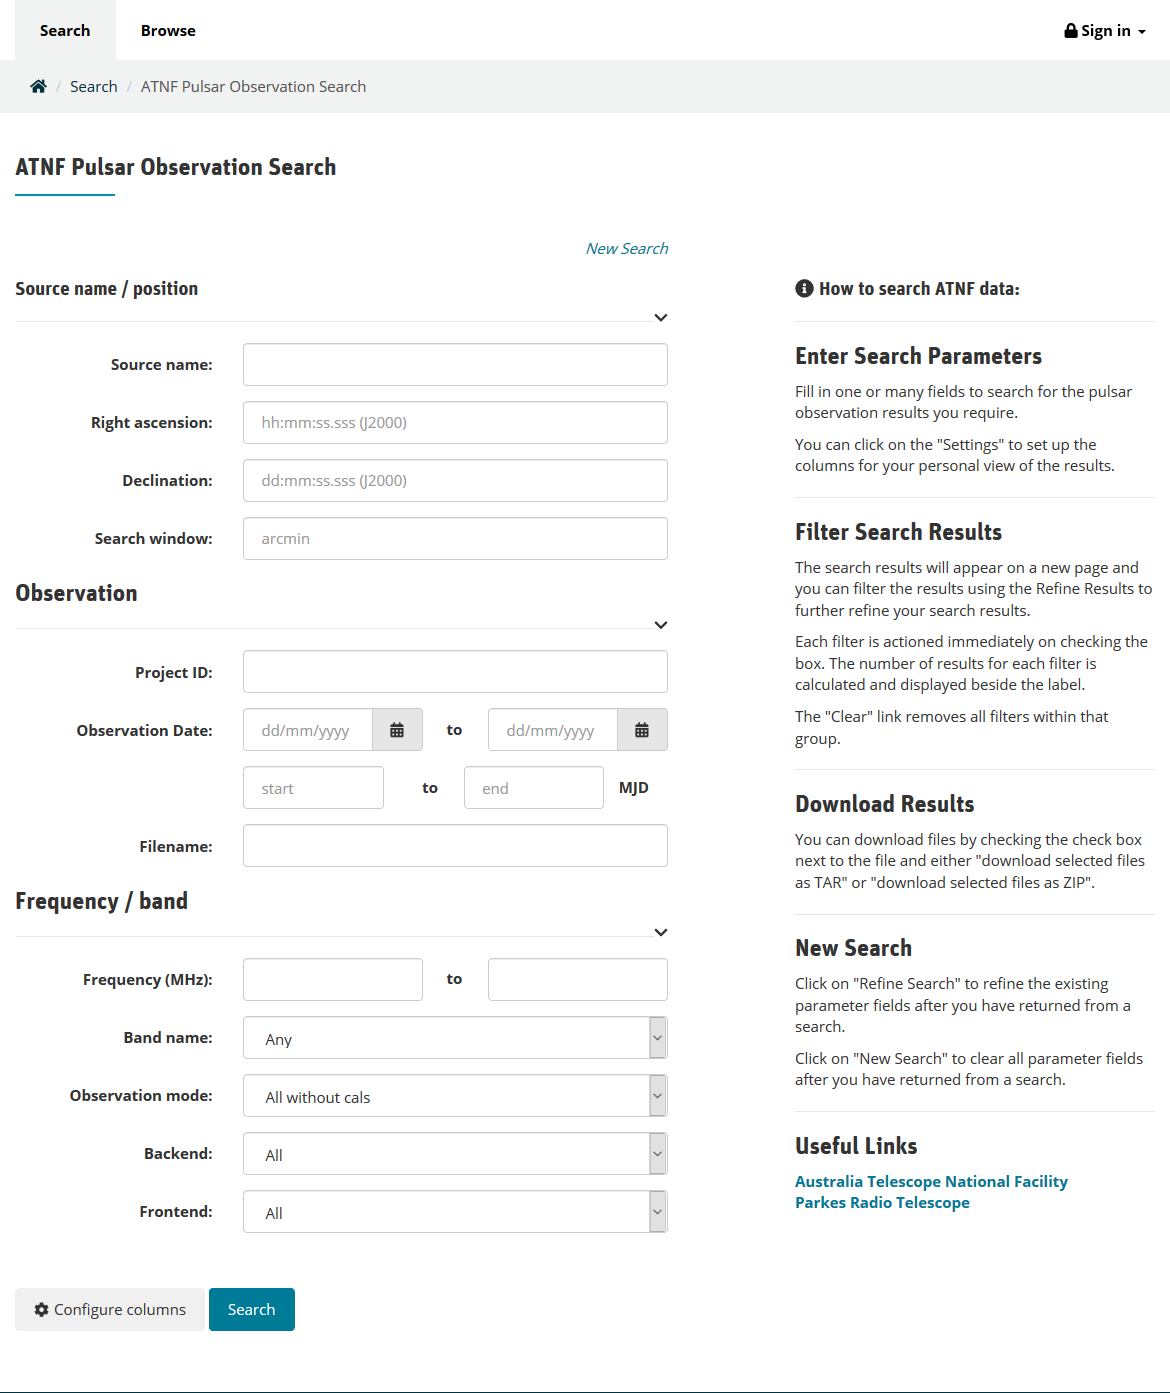 ATNF Pulsar Observation Search - Data Access Portal User Guide